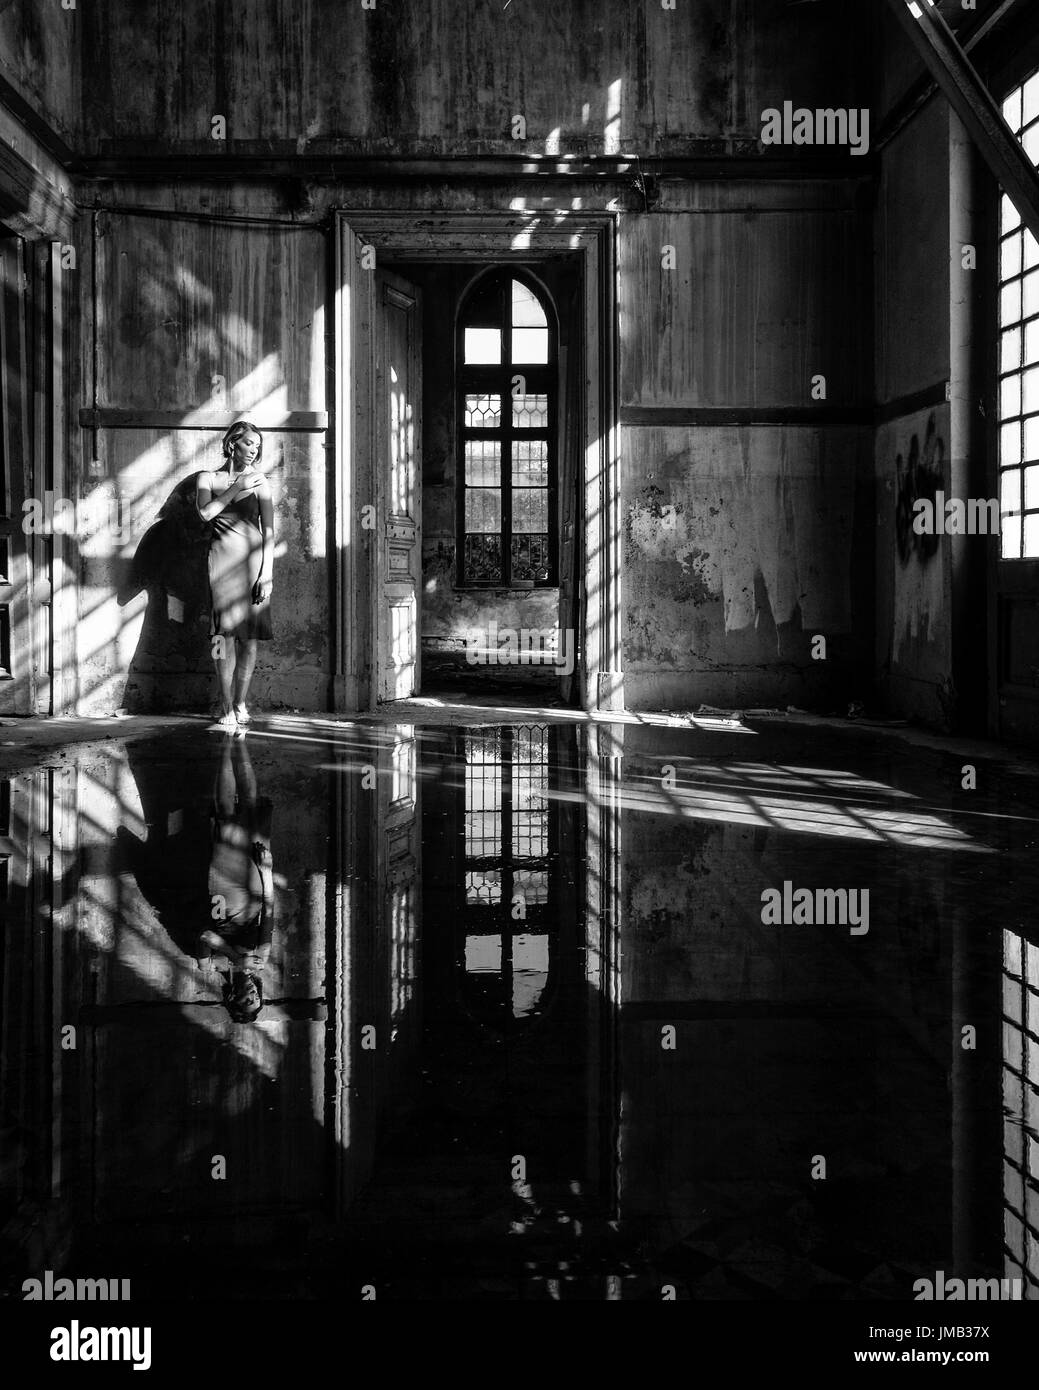 Young Woman Standing In Abandoned Building - Stock Image